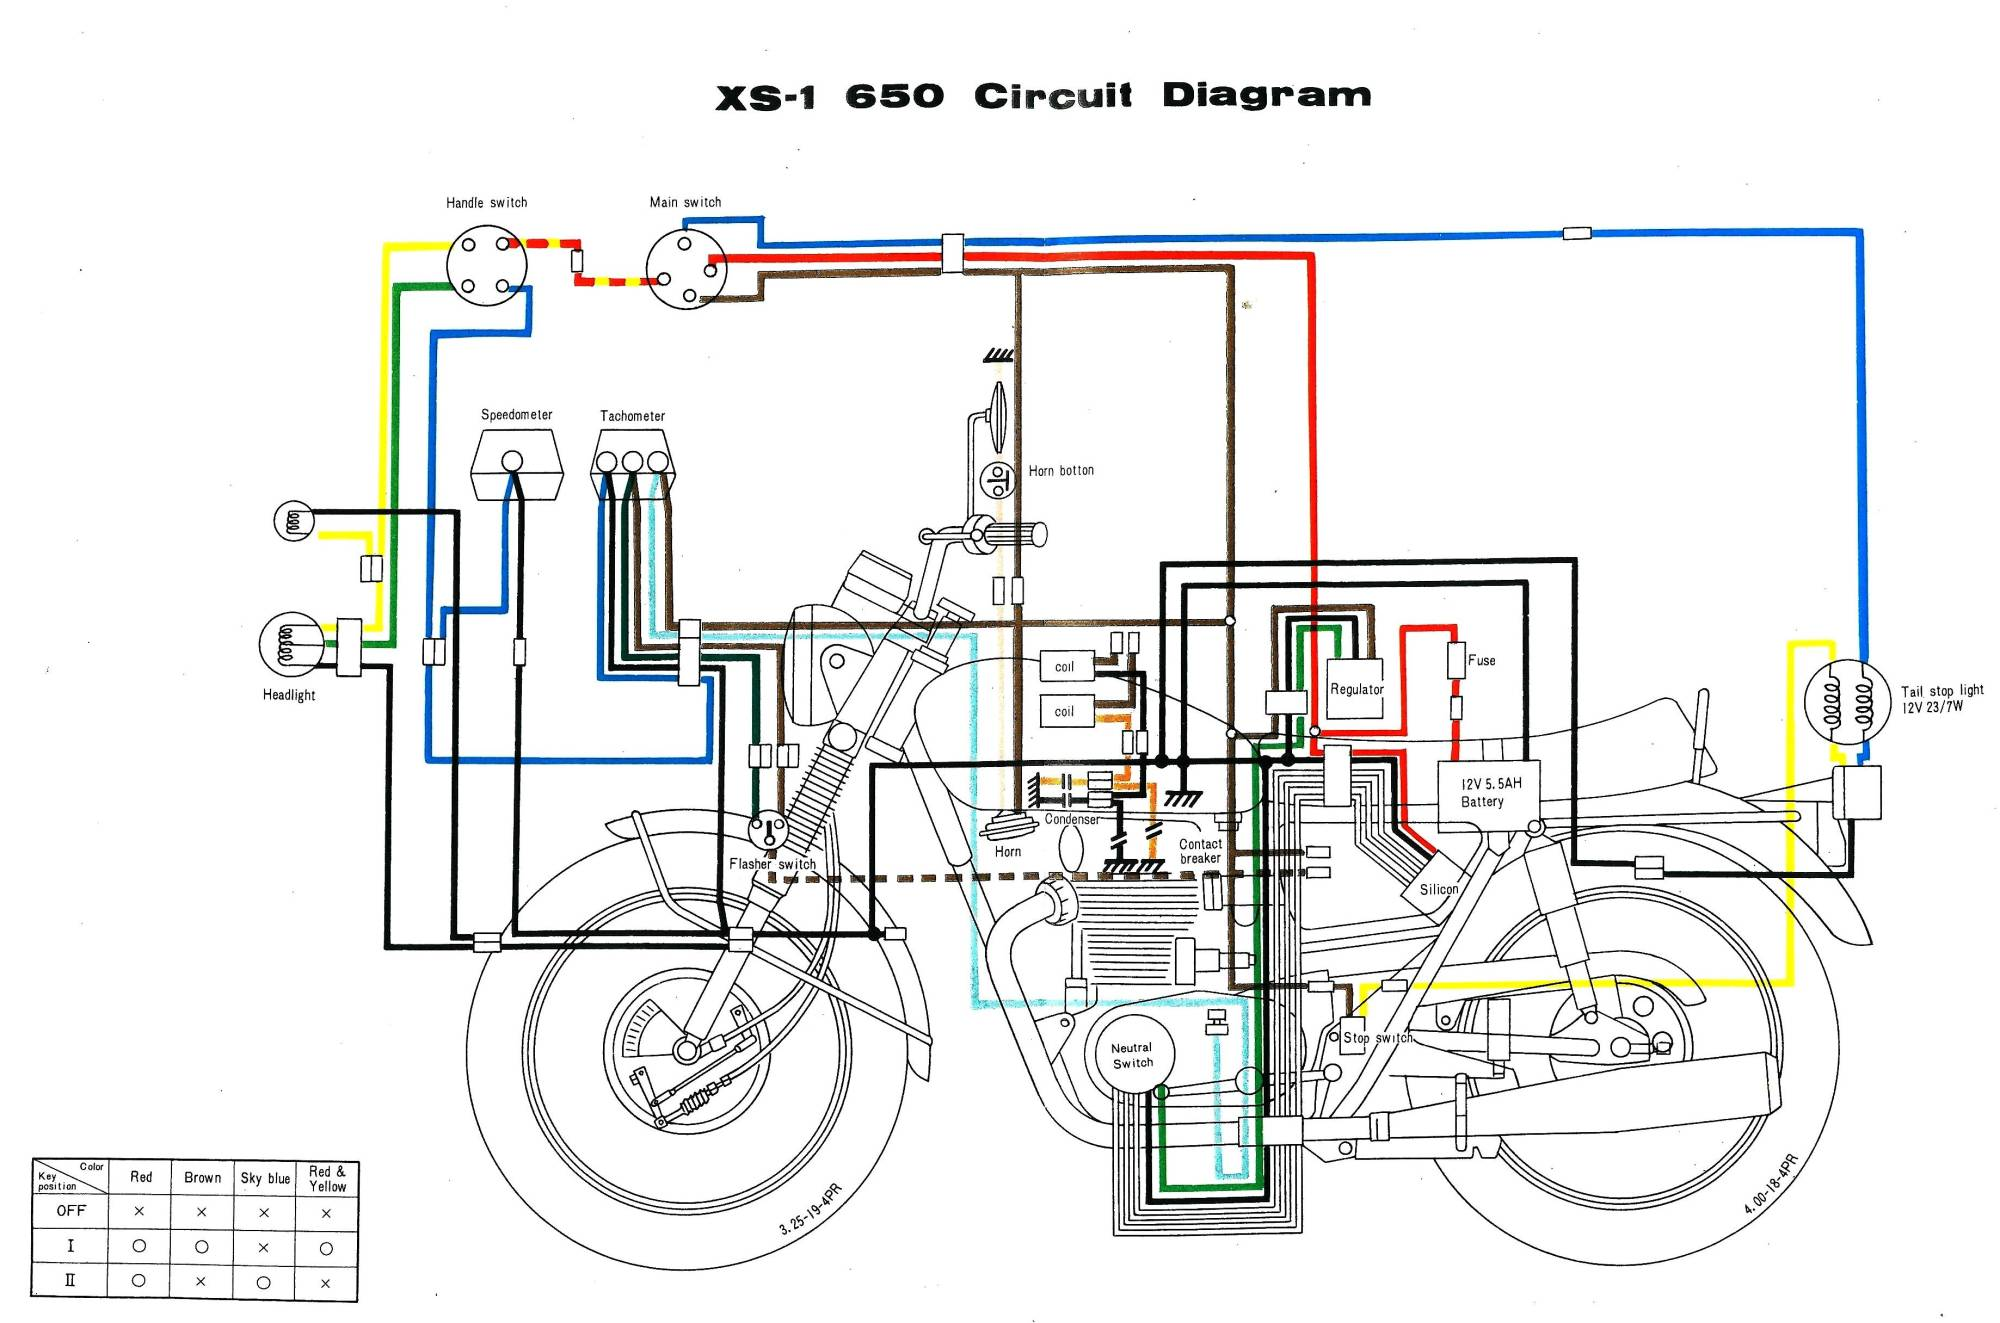 hight resolution of 1978 xs650 wiring diagram schematic wiring diagram third level 1979 wiring yamaha diagram xs750f 1979 yamaha wiring diagram